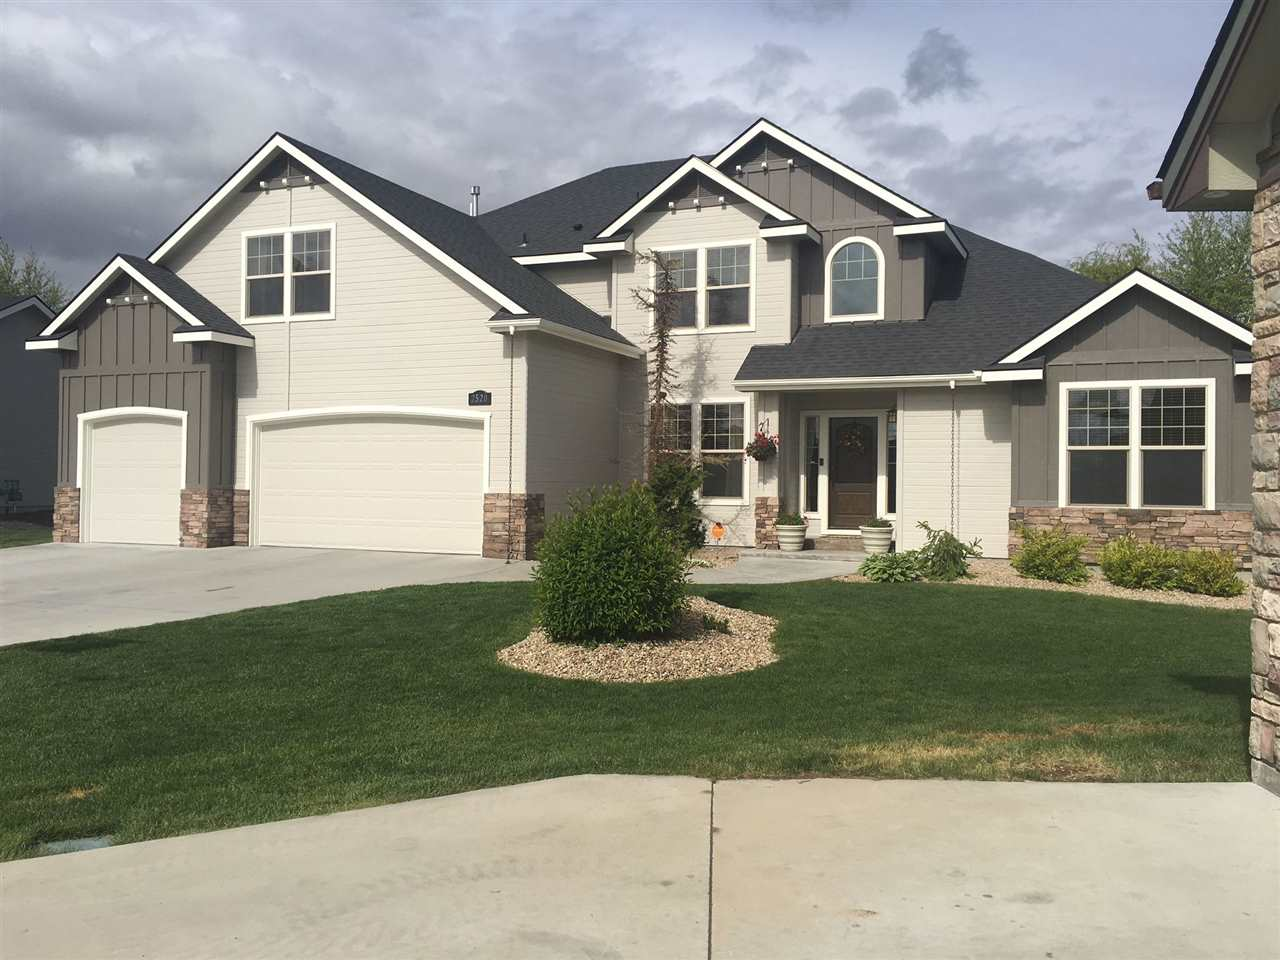 2520 Mill Court, Nampa, Idaho 83686, 5 Bedrooms, 4 Bathrooms, Rental For Rent, Price $1,800, 98671619